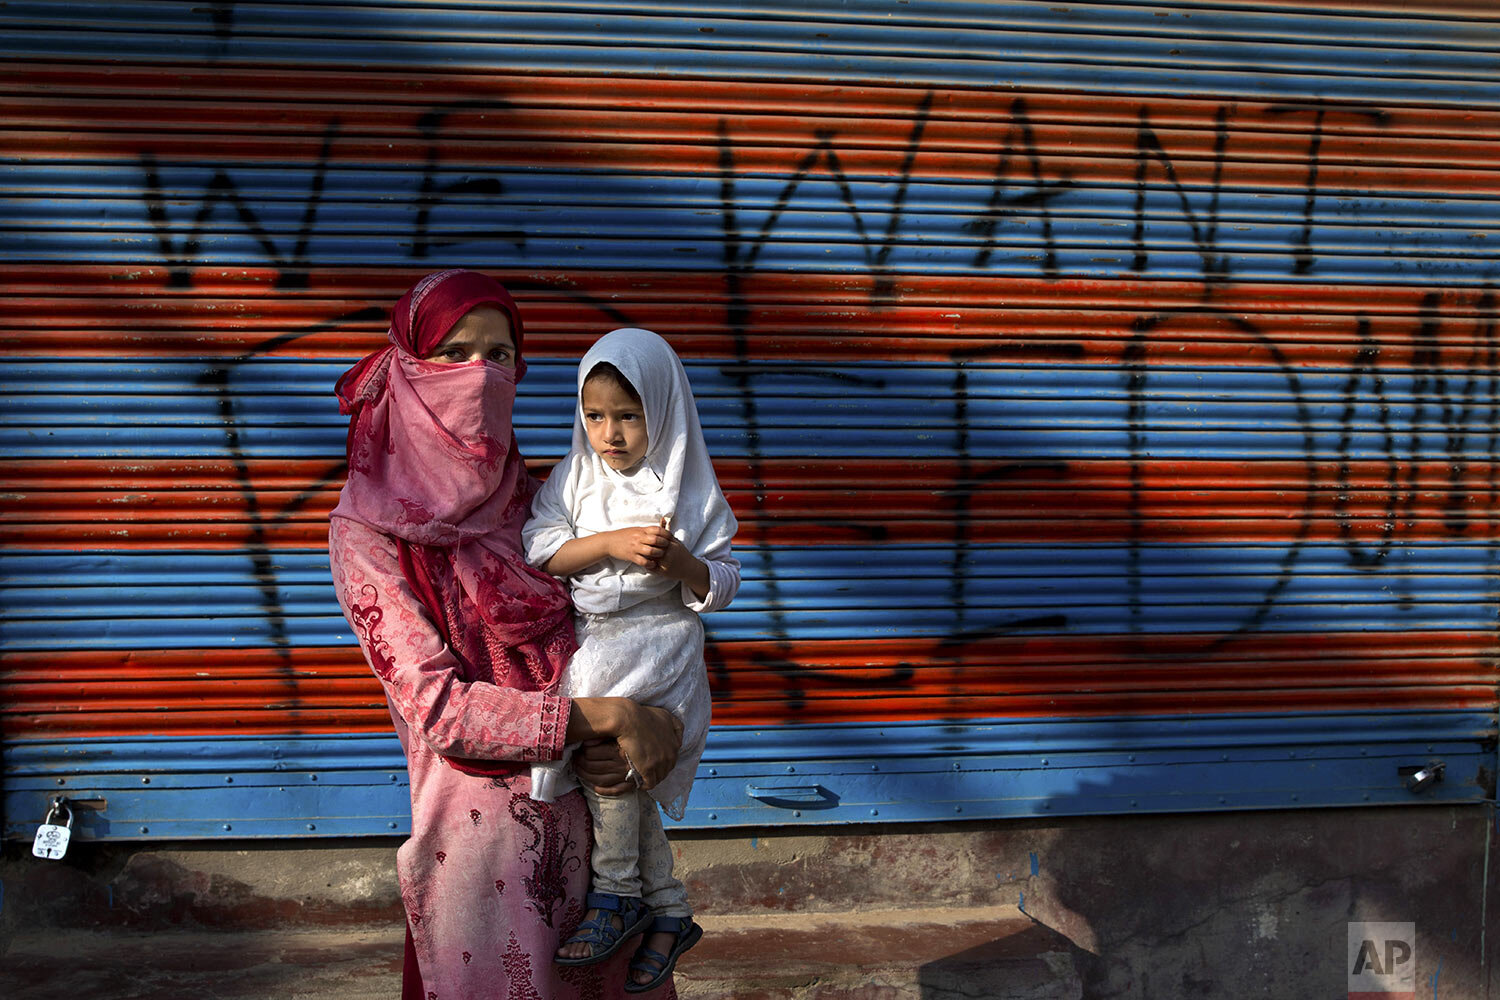 Kashmir protestor Jawahira Banoo carries her 3-year-old daughter Rutba while standing for a photograph outside a closed shop with a spray-painted graffiti message after a protest on the outskirts of Srinagar, Indian controlled Kashmir, Friday, Sept. 27, 2019. (AP Photo/ Dar Yasin)